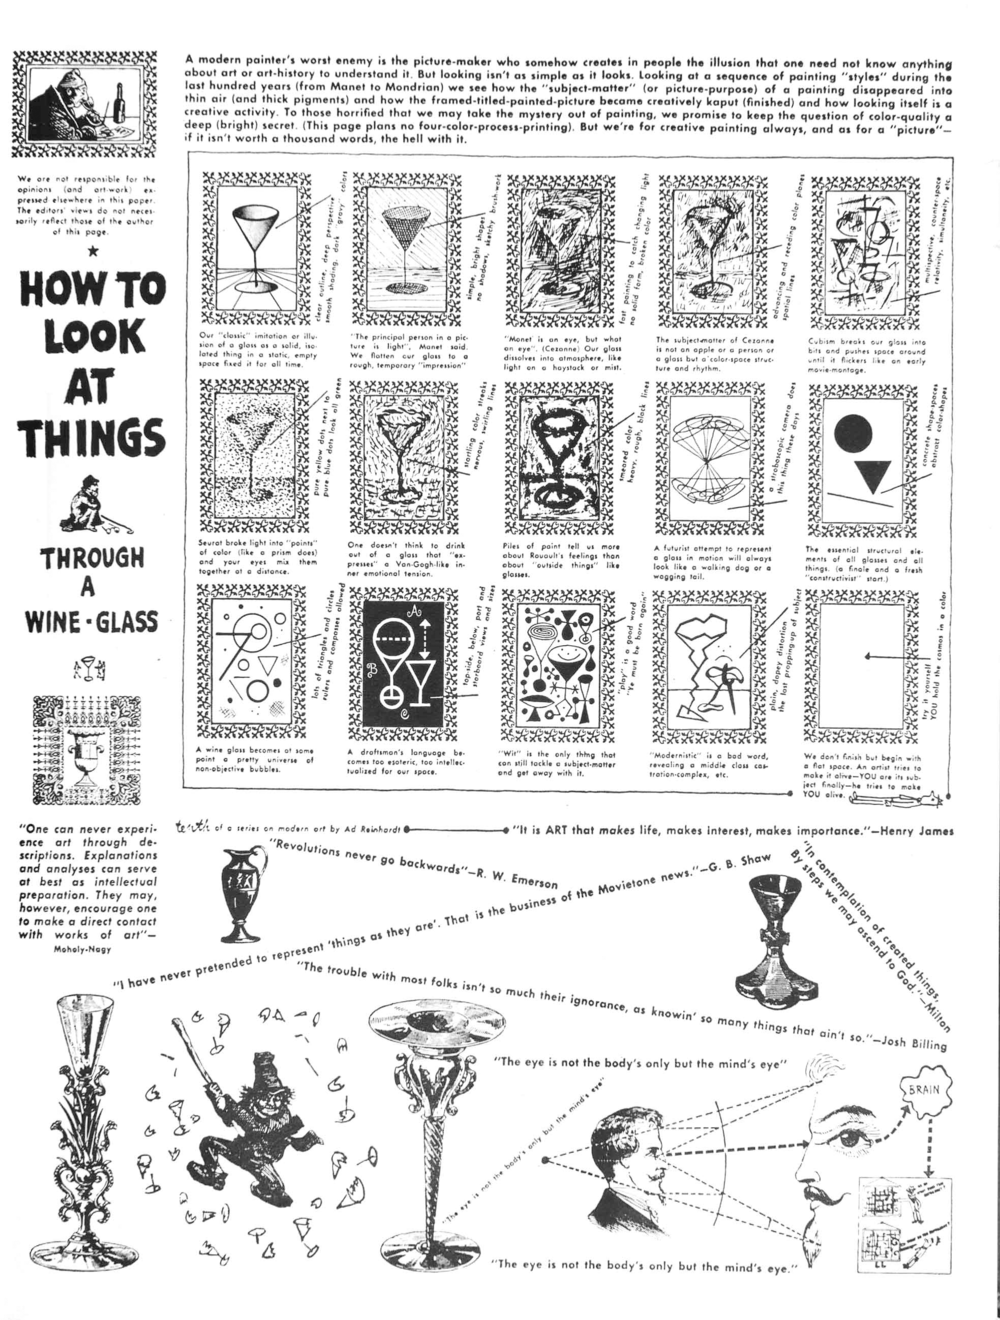 ad reinhardt, How to Look at Things through a Wine-Glass, 1946, spencer museum of art, lawrence, kansas